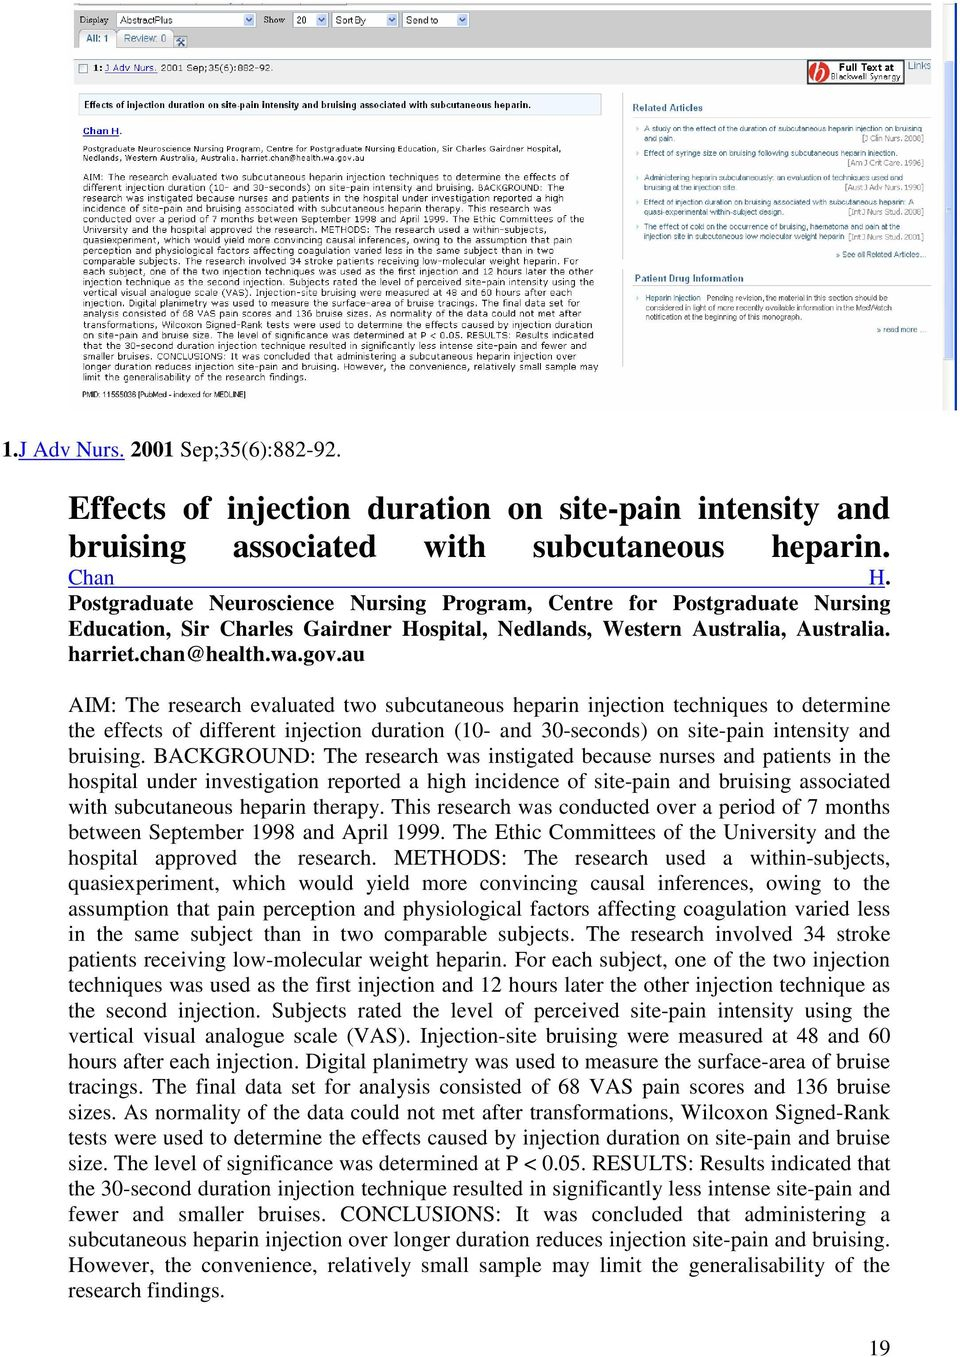 au AIM: The research evaluated two subcutaneous heparin injection techniques to determine the effects of different injection duration (10- and 30-seconds) on site-pain intensity and bruising.